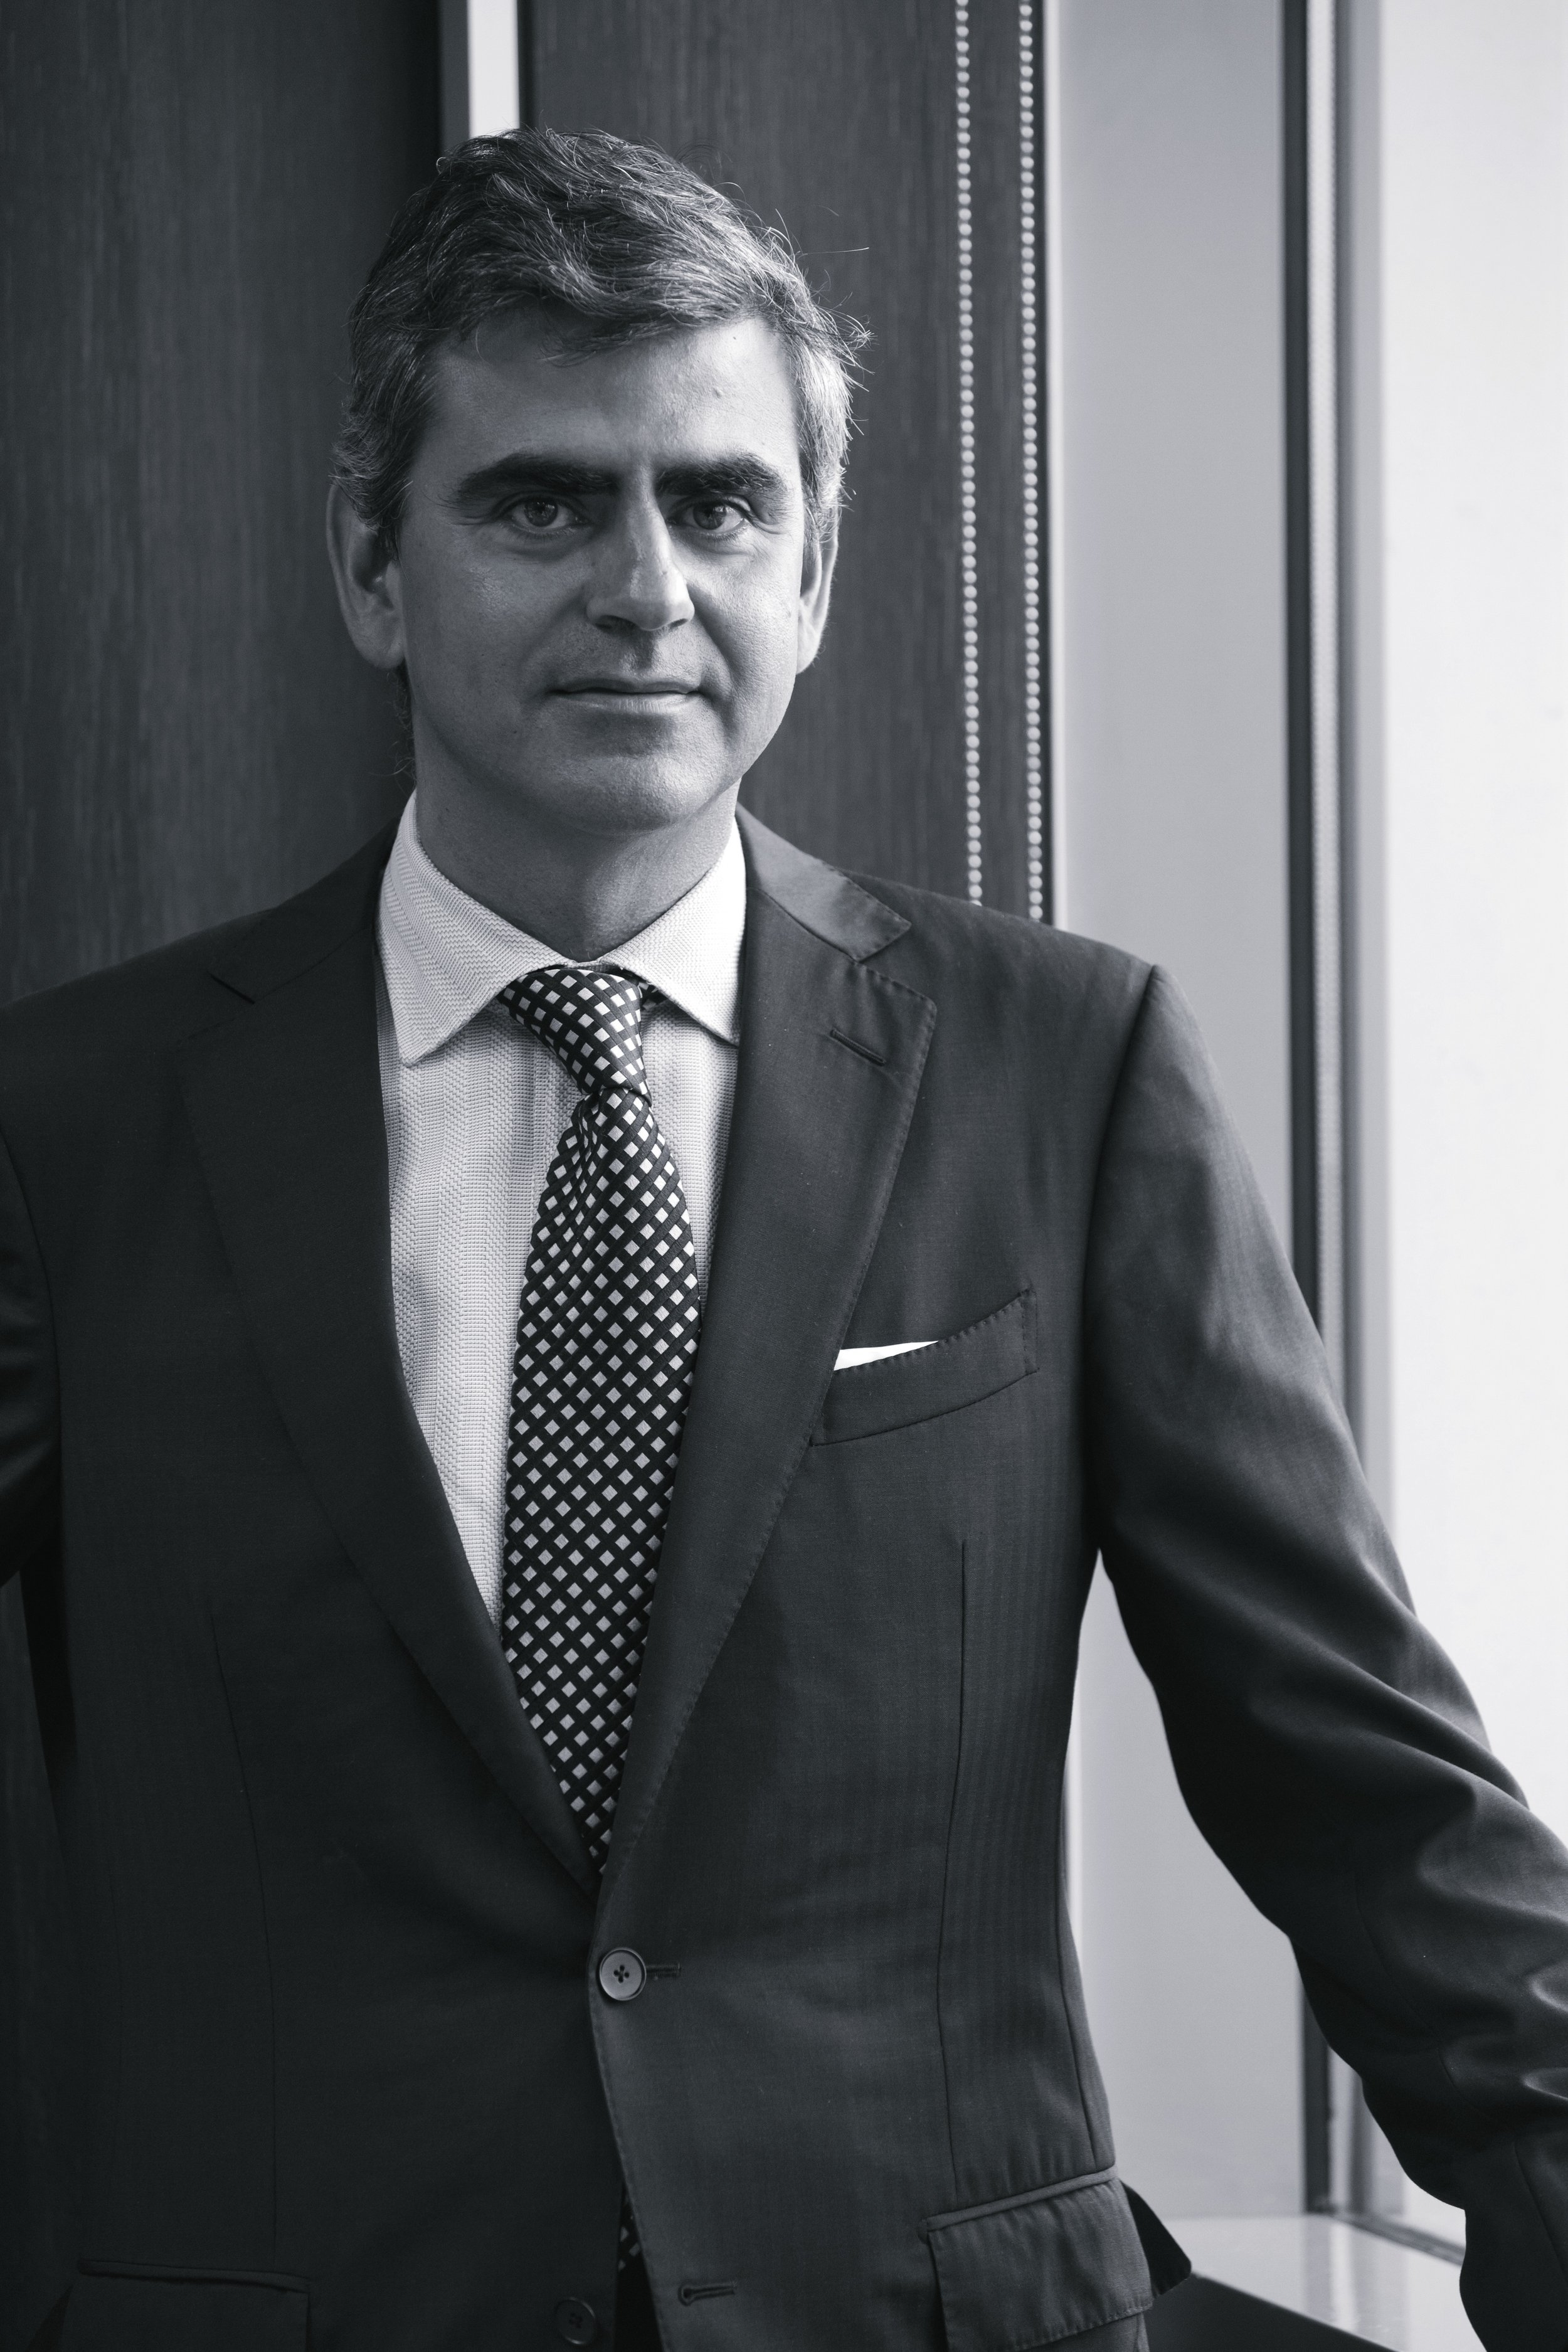 - JUAN CRUZCIO, Founding Partner & Member of the Board of DirectorsJuan is responsible for Investments. He has ample experience in the management of proprietary portfolios of financial institutions, as well as in hedge fund management, specializing in the utilities, infrastructure and renewables sector. Between 2000 and 2005, Juan was one of the founding partners of BBVA & Partners, a Madrid based hedge fund, where he was responsible for investments in the utilities sector, among other things. Juan has been involved in long/short equity and/or proprietary trading for more than 20 years, being associated with Argentaria (a company that merged into BBVA in 2000) from 1994 through 1999 and with Santander from 1999 through 2000, two of the largest financial institutions of Spain. Juan holds a B.Sc. in Economics from CUNEF, Madrid.